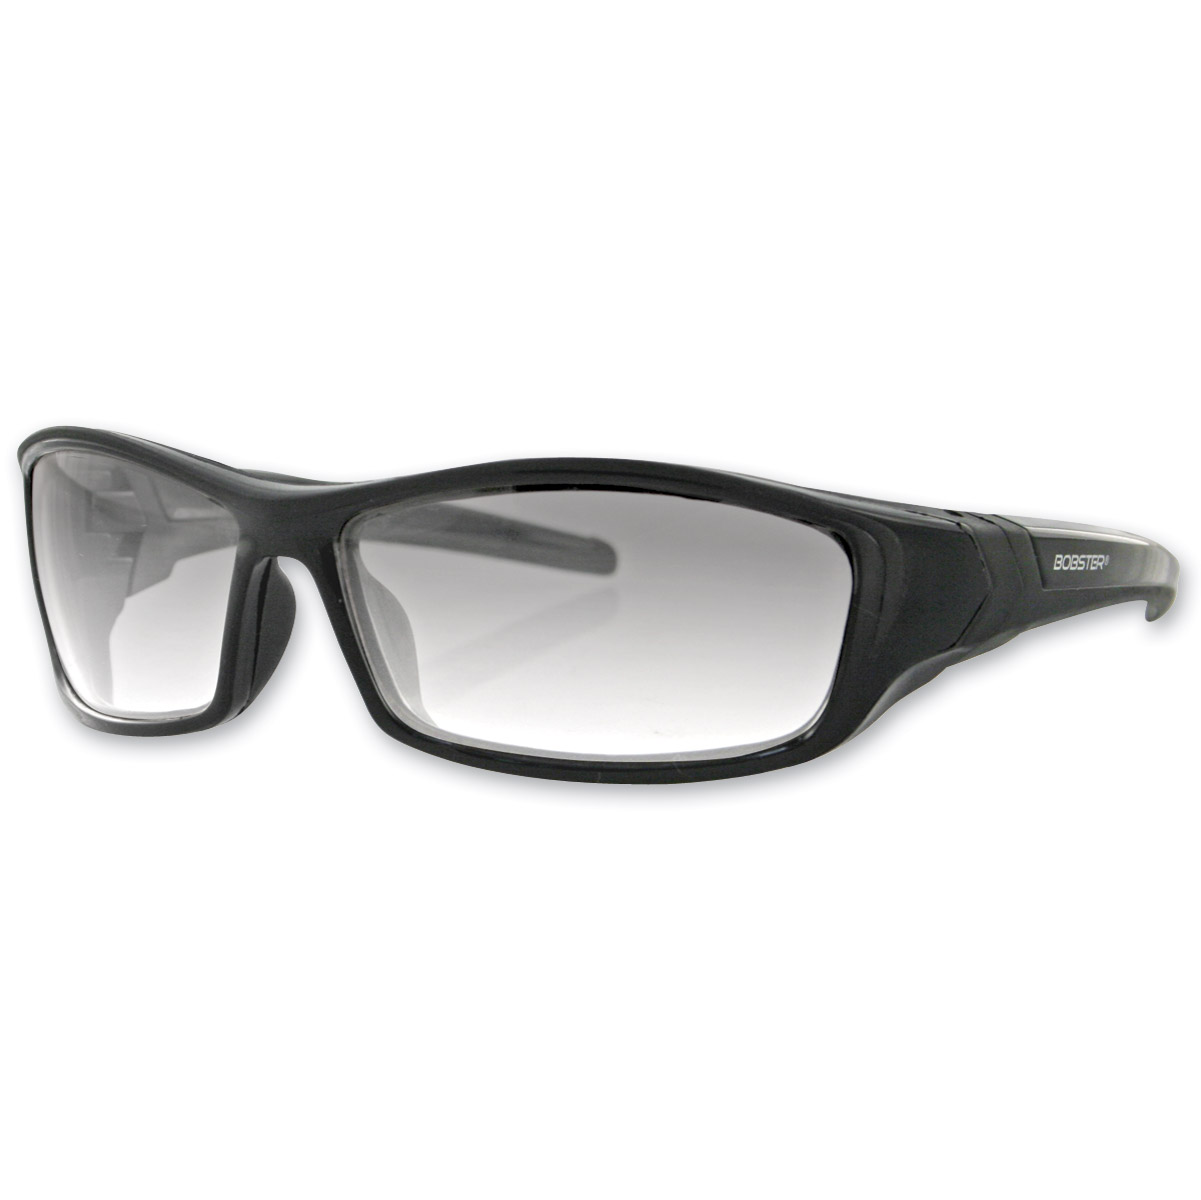 Bobster Hooligan Sunglass with Photochromic Lens